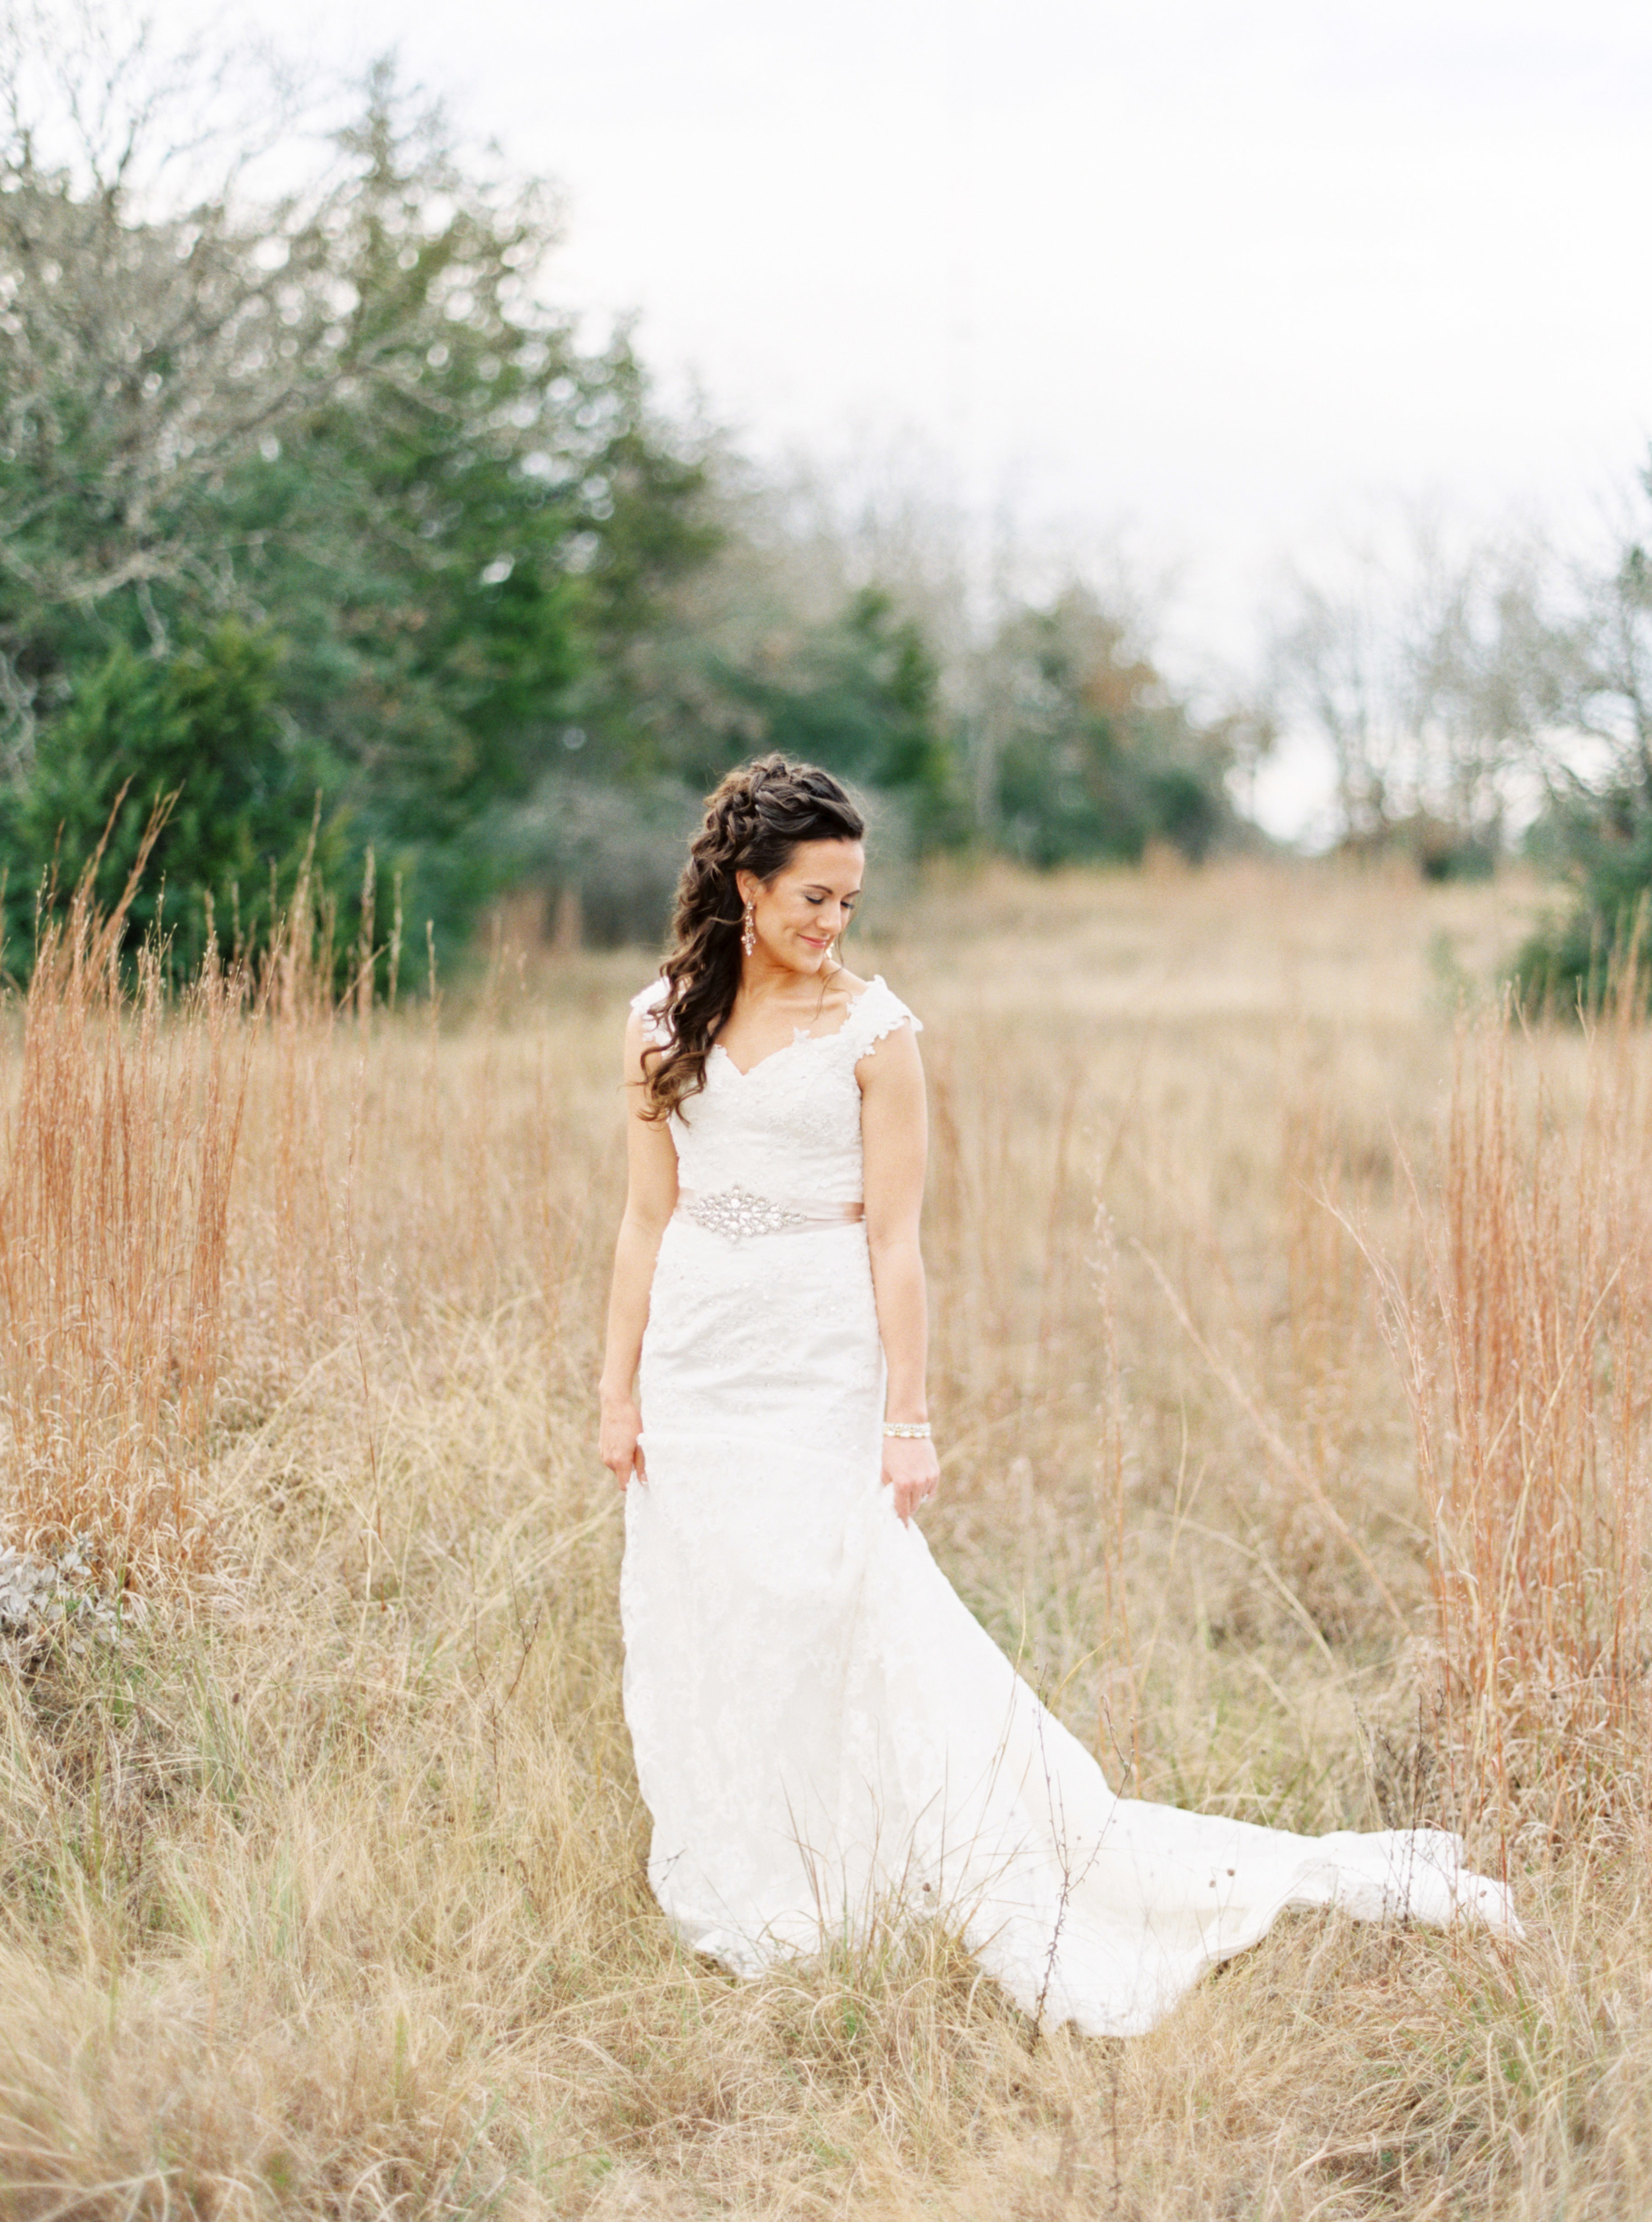 Sarah Best Photography - Emily's Bridals-121.jpg